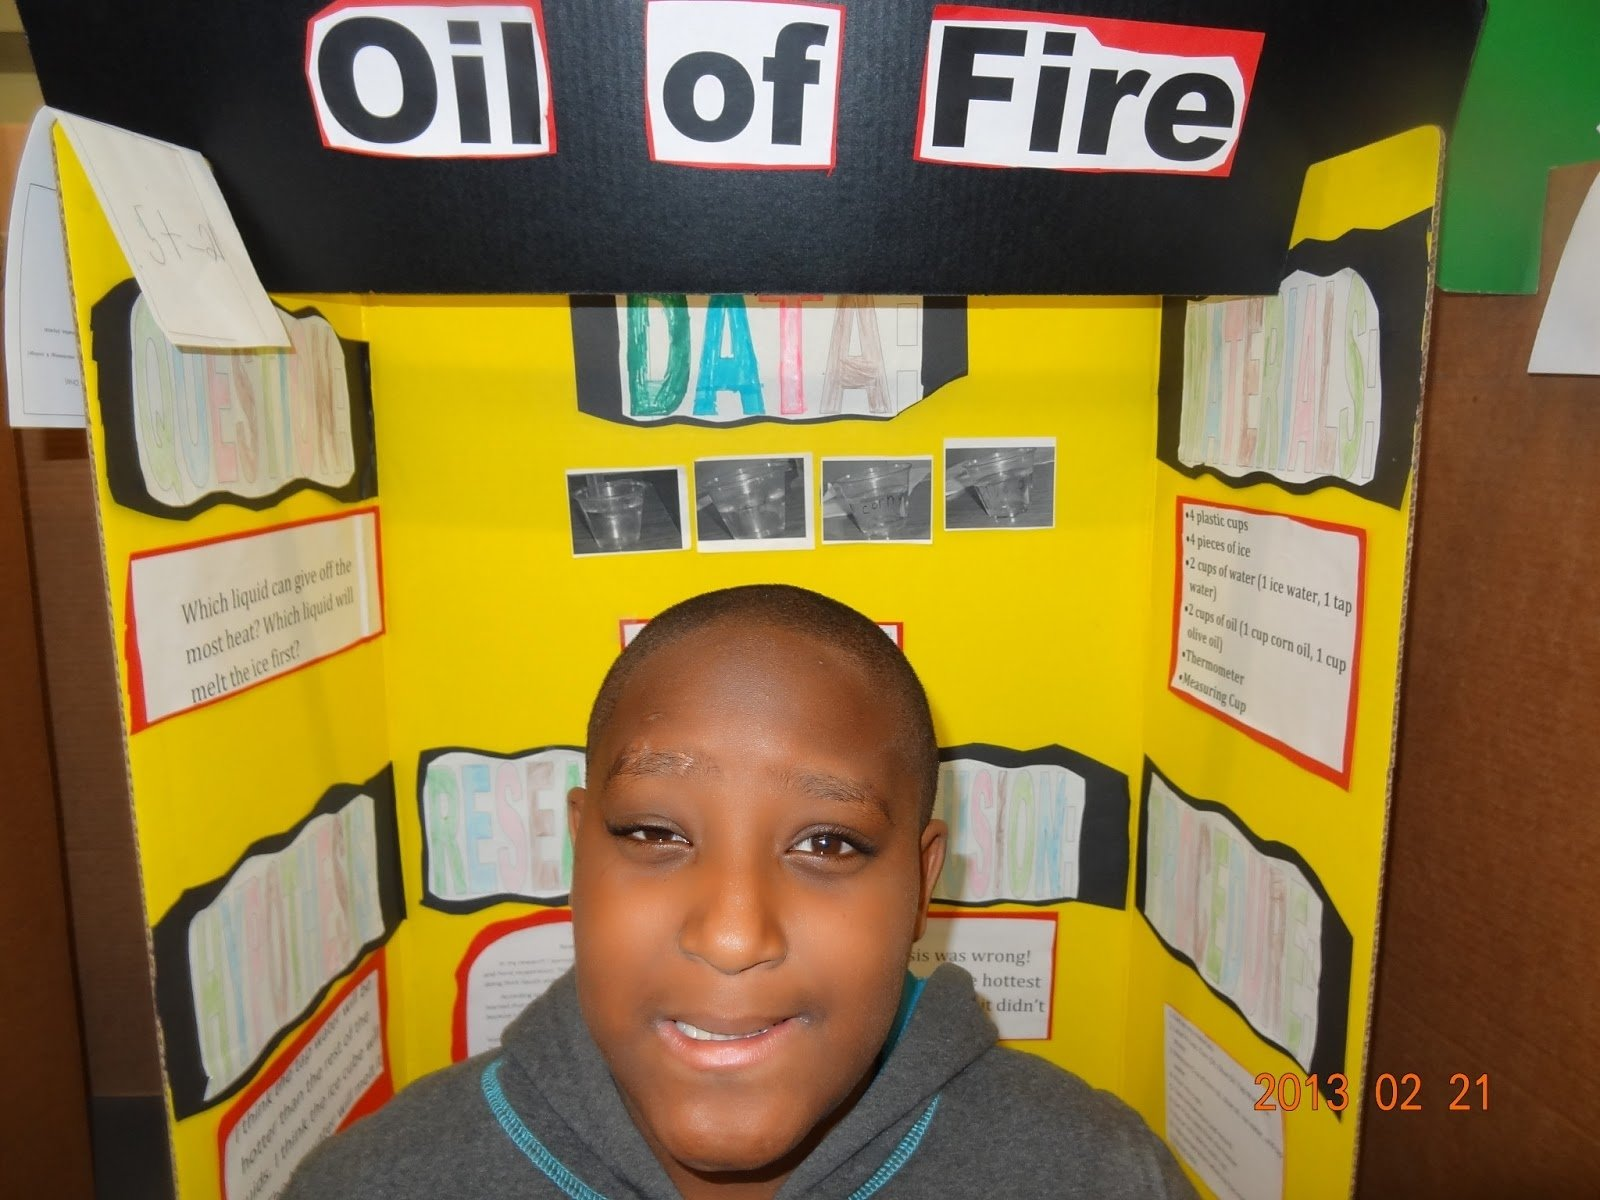 10 Fantastic Science Fair Projects Ideas For 5Th Graders nokw woodwork 5th grade 8th grade science fair projects info 22 2021